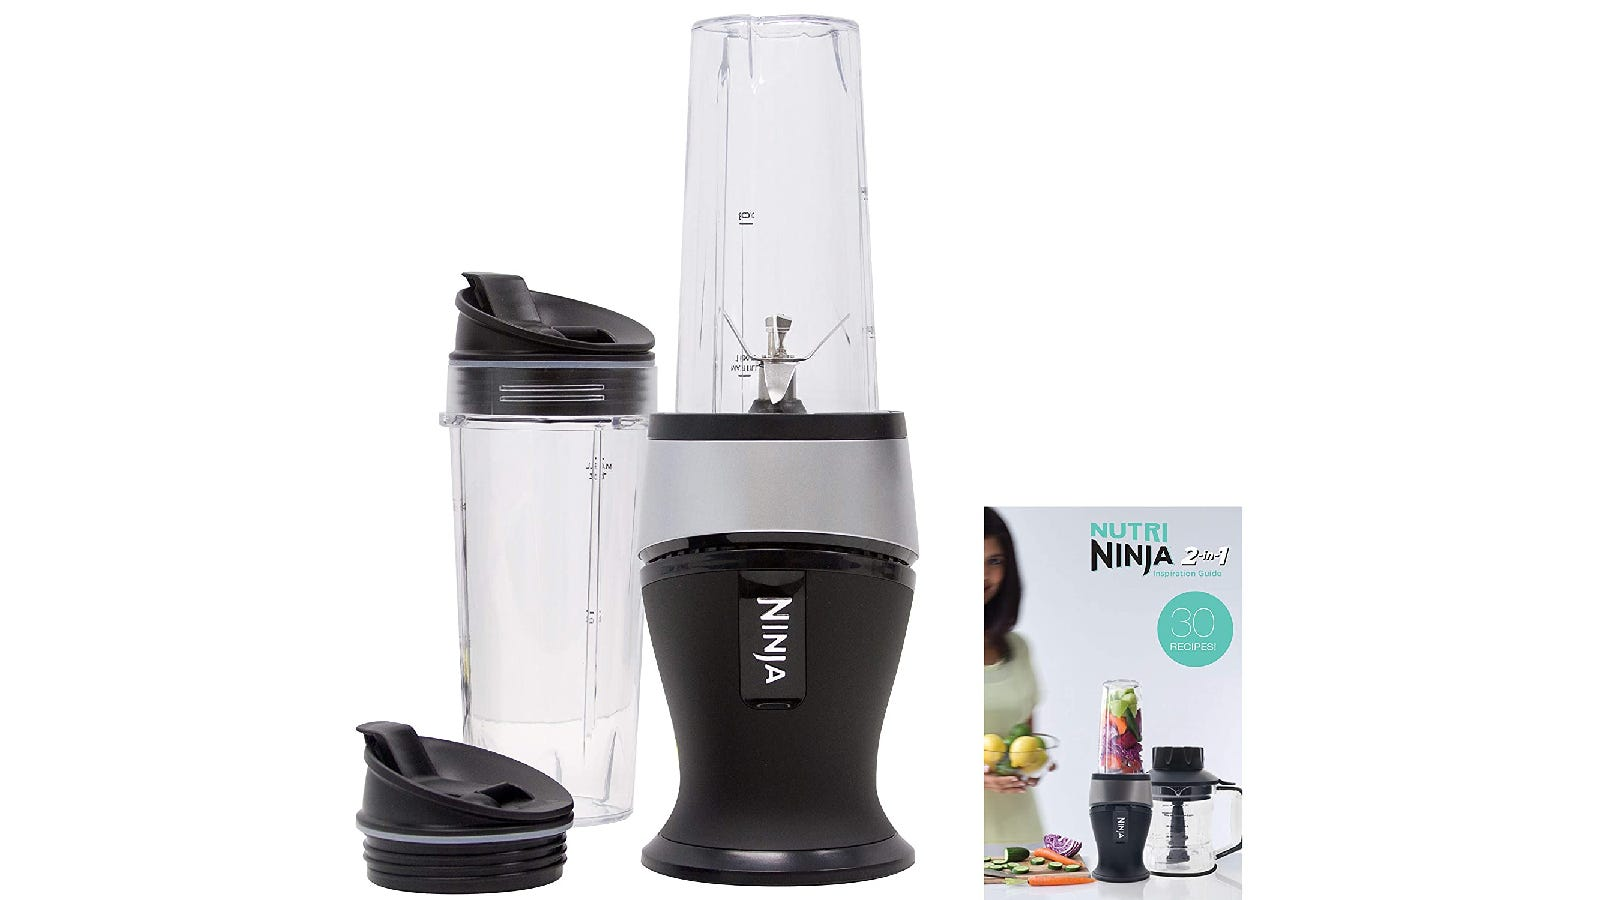 personal blender with a black base and clear blender cup; to the left is an extra blender cup with two black lids, and to the right is a blender instruction manual